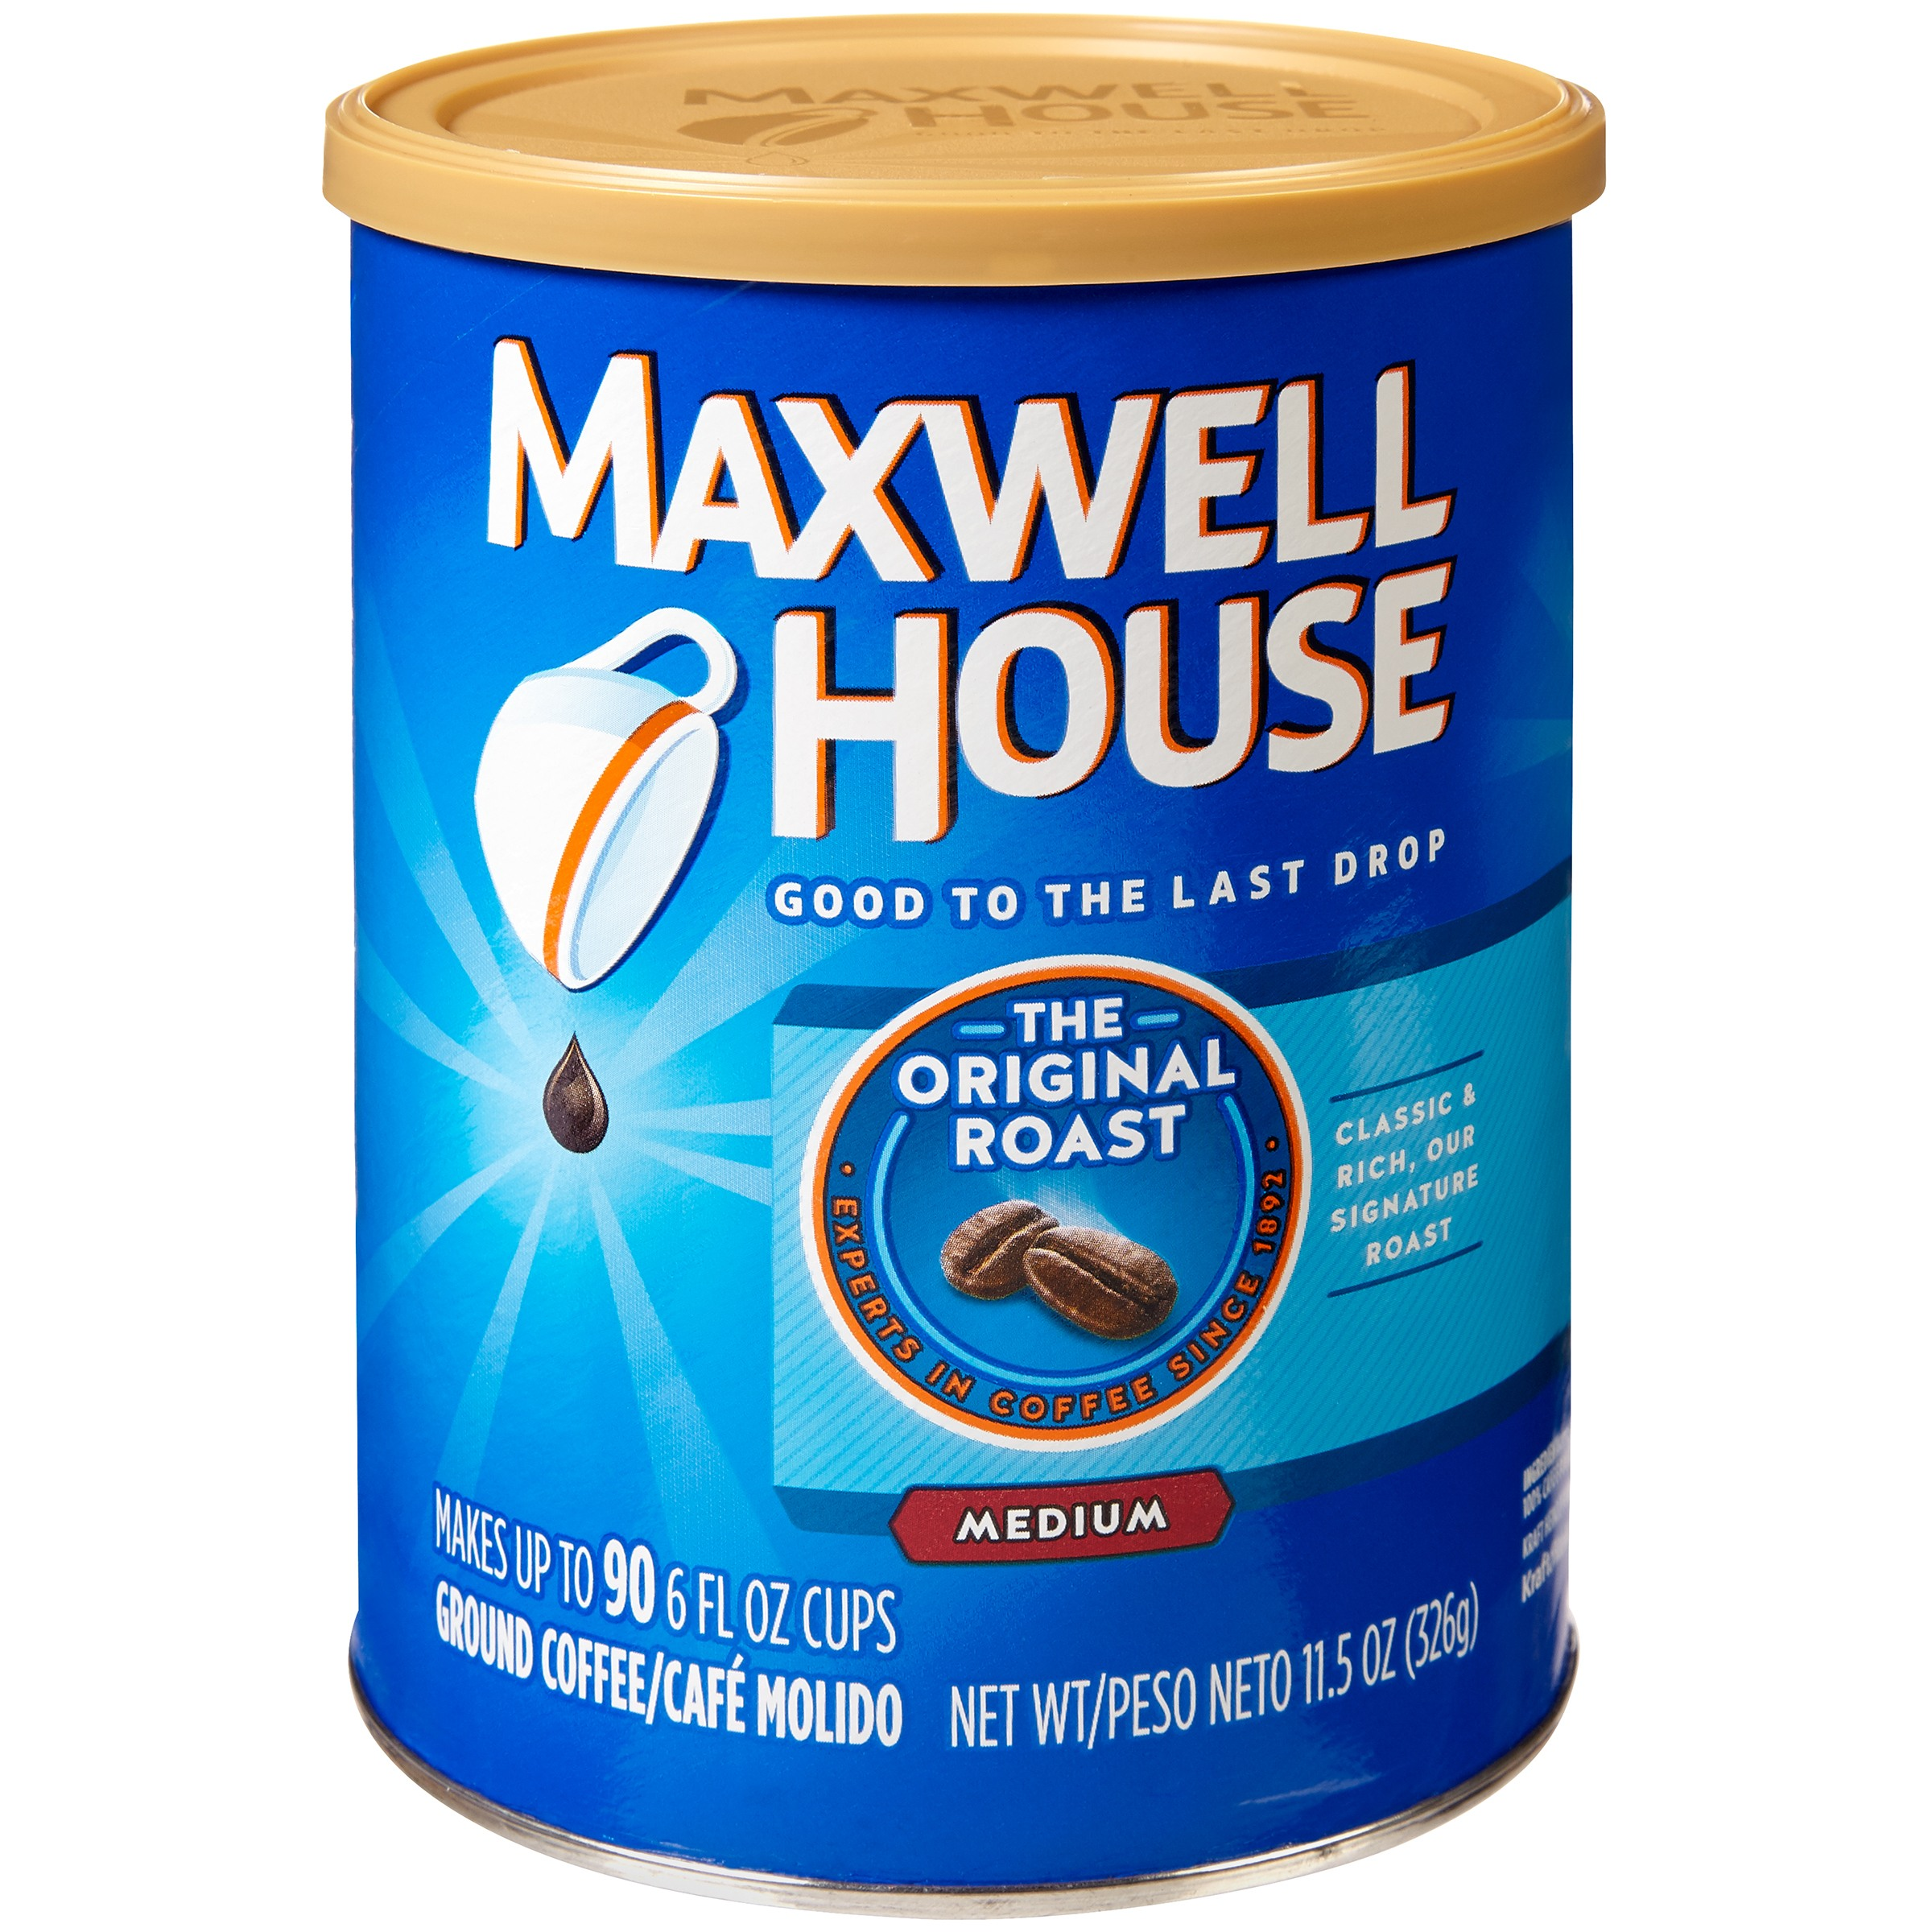 Maxwell House Original Medium Roast Ground Coffee, 11.5 OZ (326g) Canister